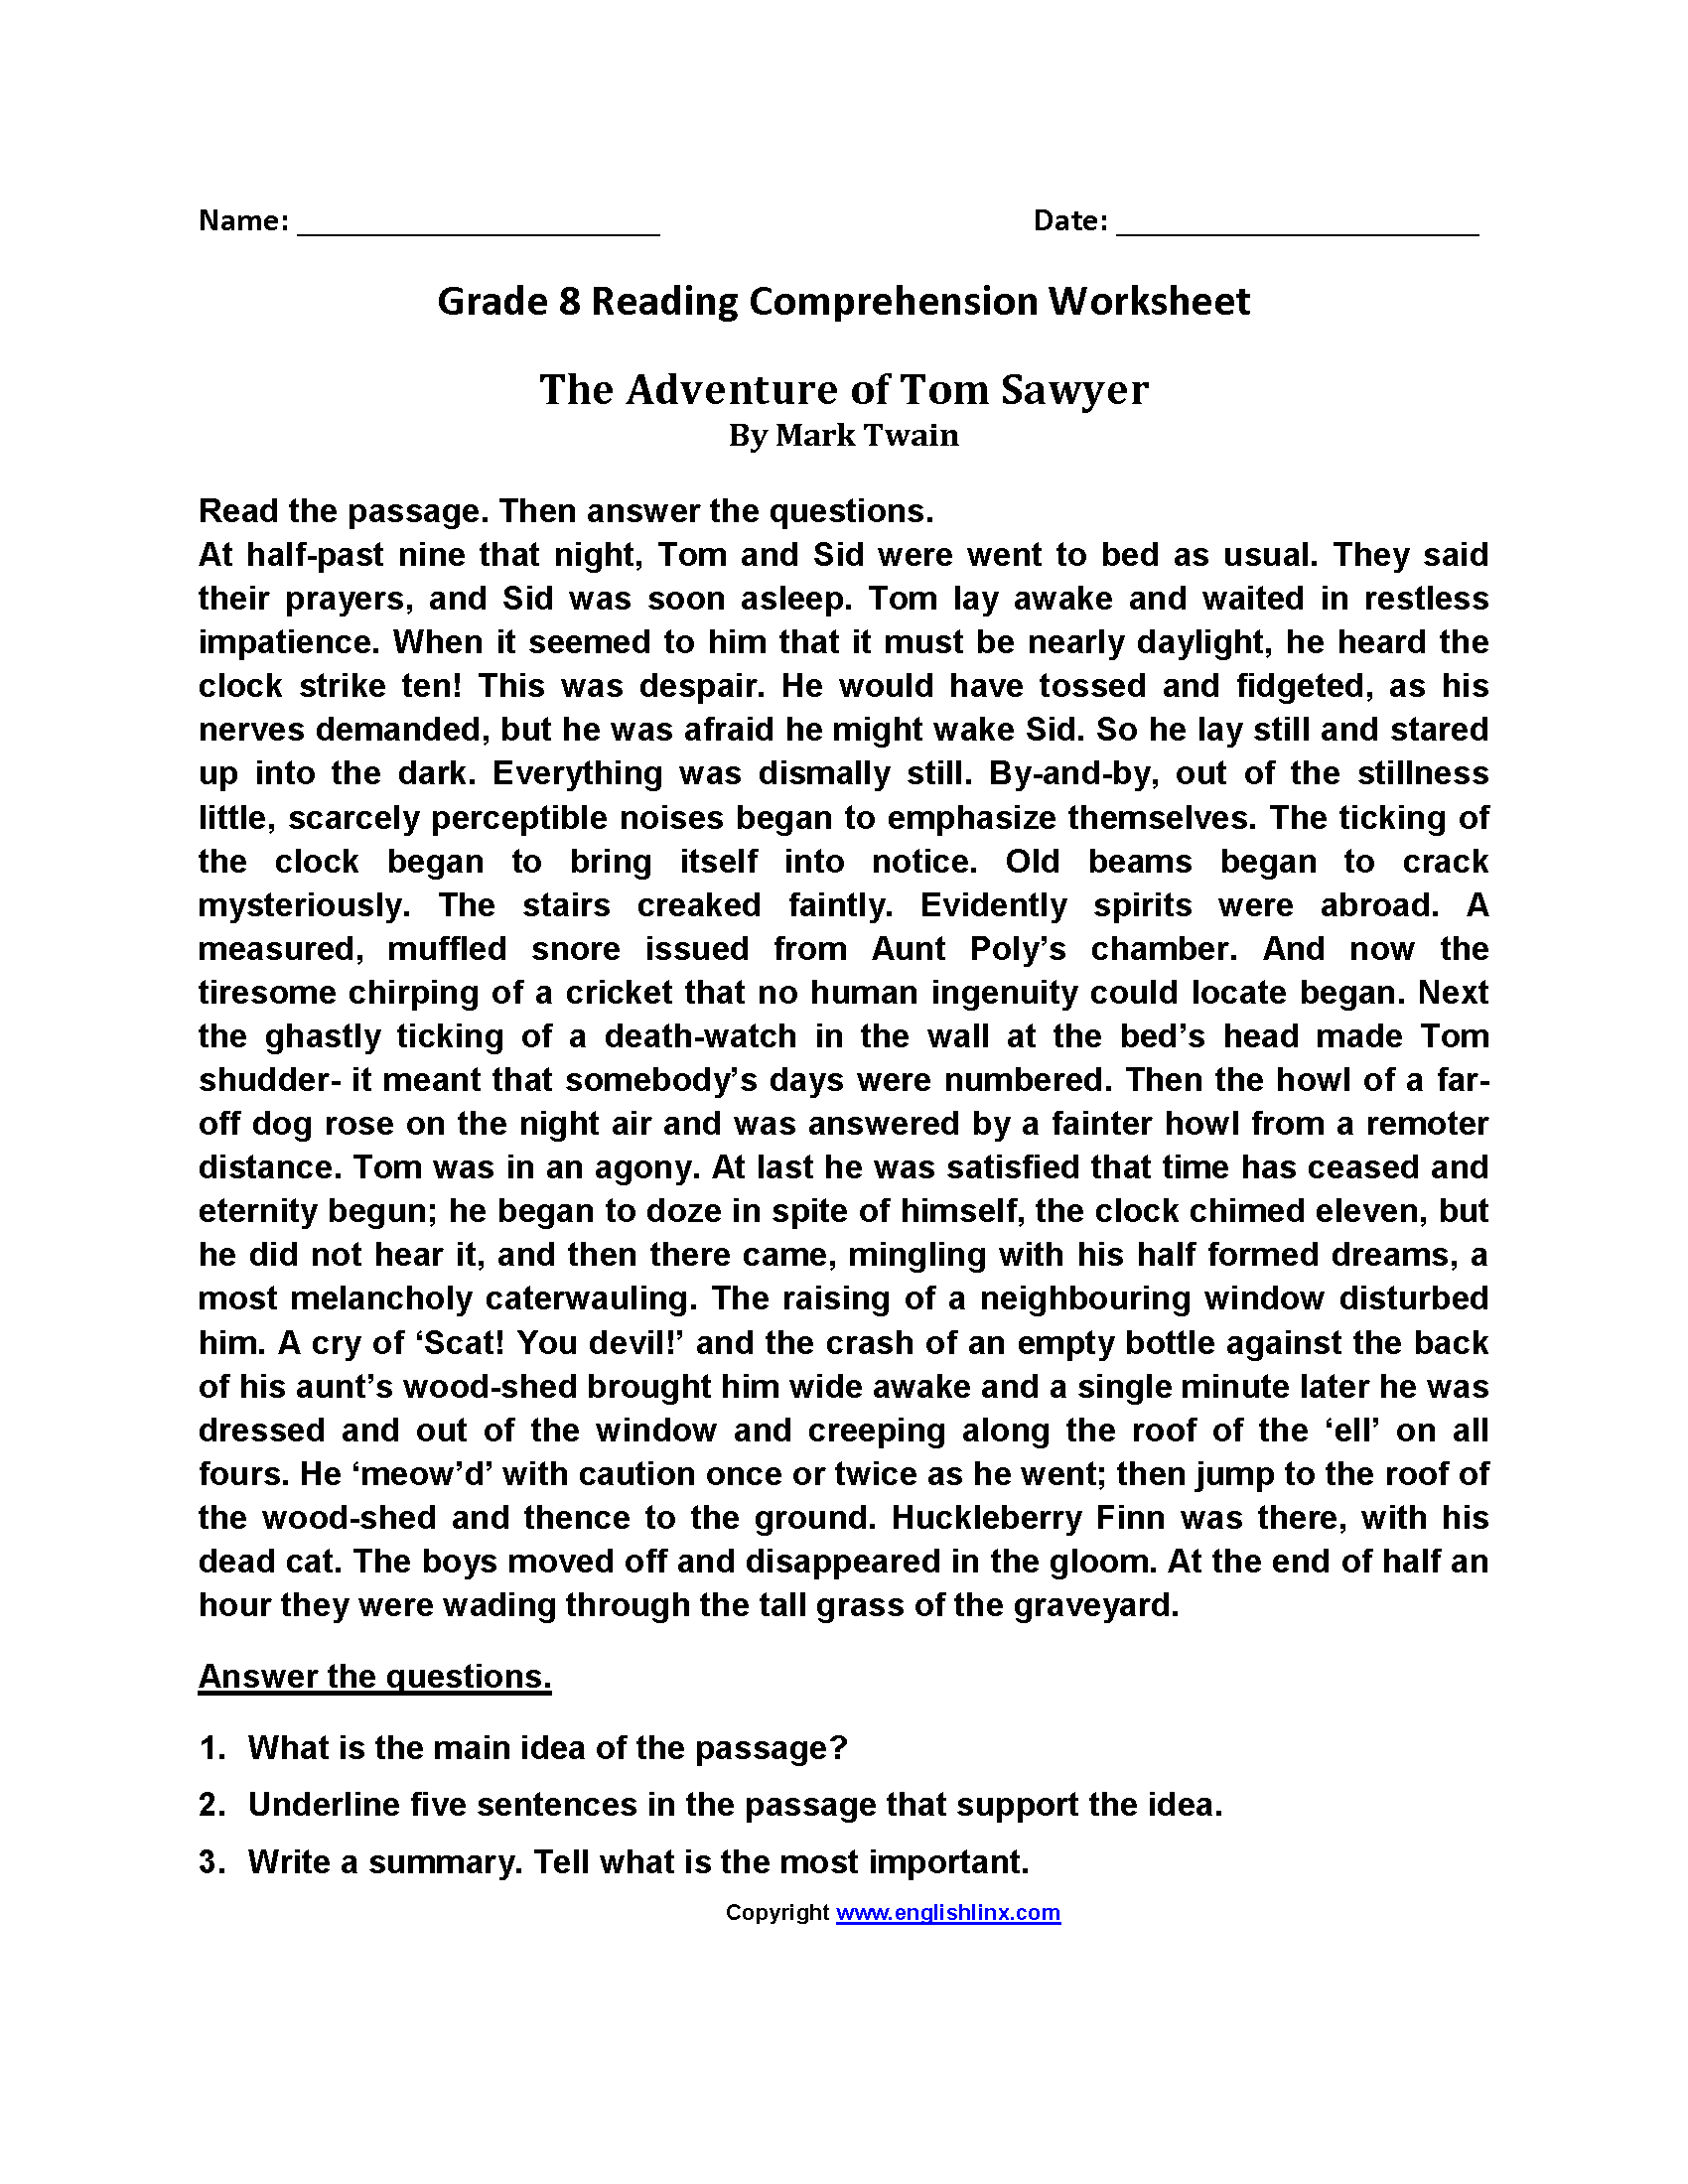 Worksheets Reading Comprehension Worksheets 8th Grade reading worksheets eighth grade worksheets